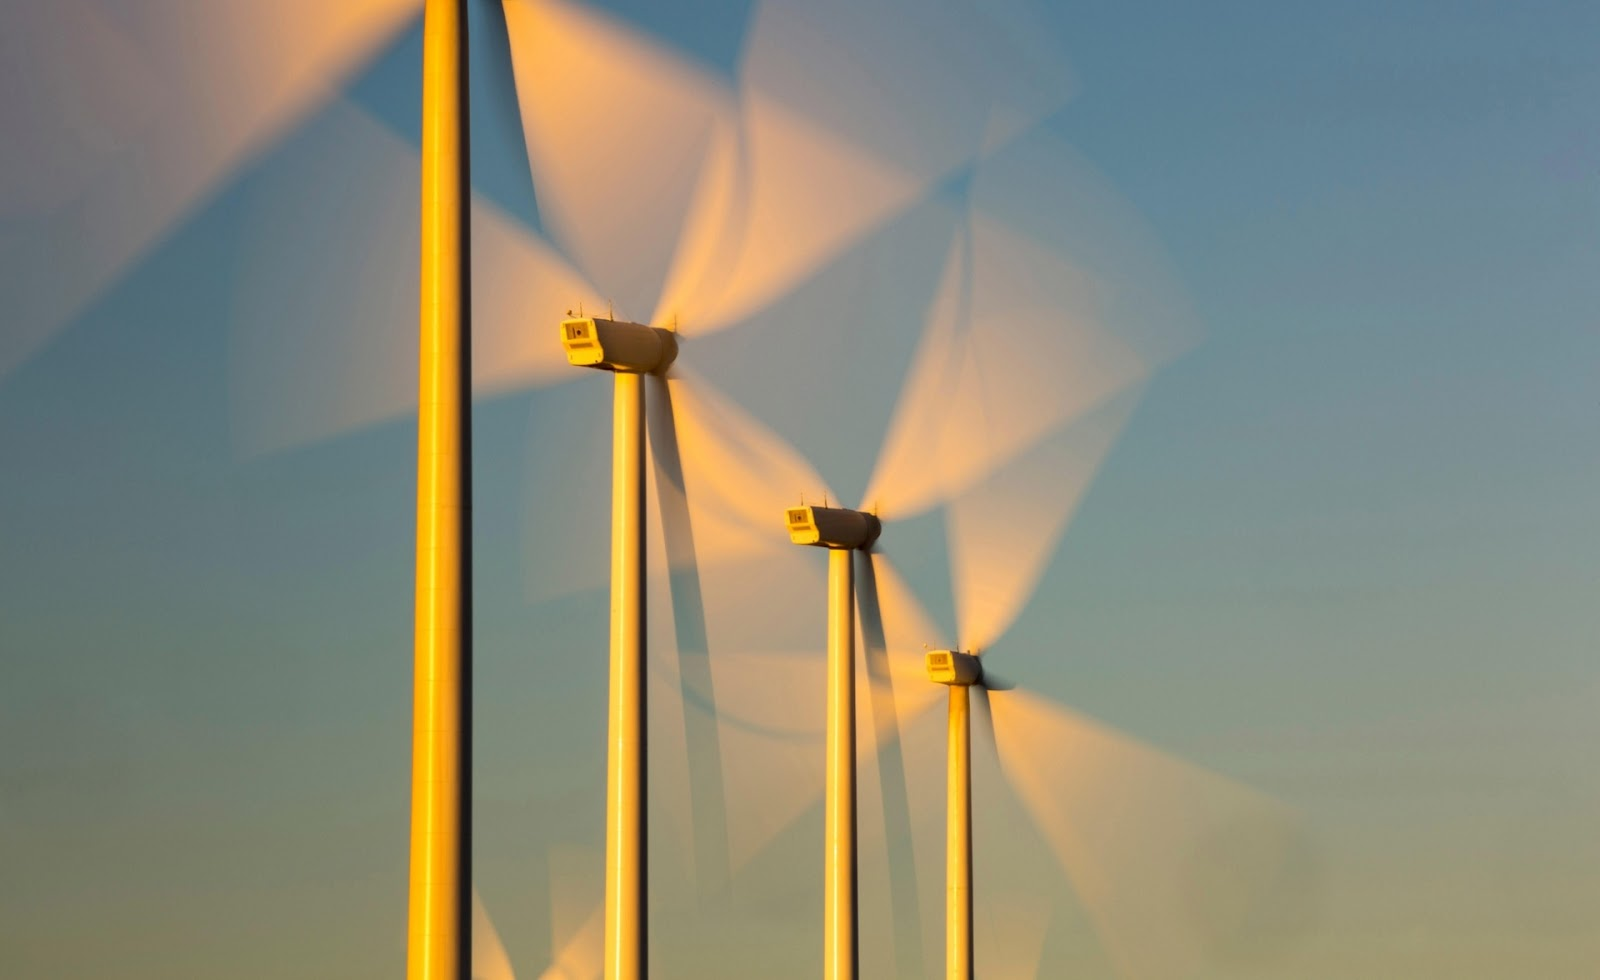 Photograph, Ashley Cooper: Part of the Tehachapi Pass wind farm, the first large scale wind farm area developed in the US, California, USA, at sunrise.